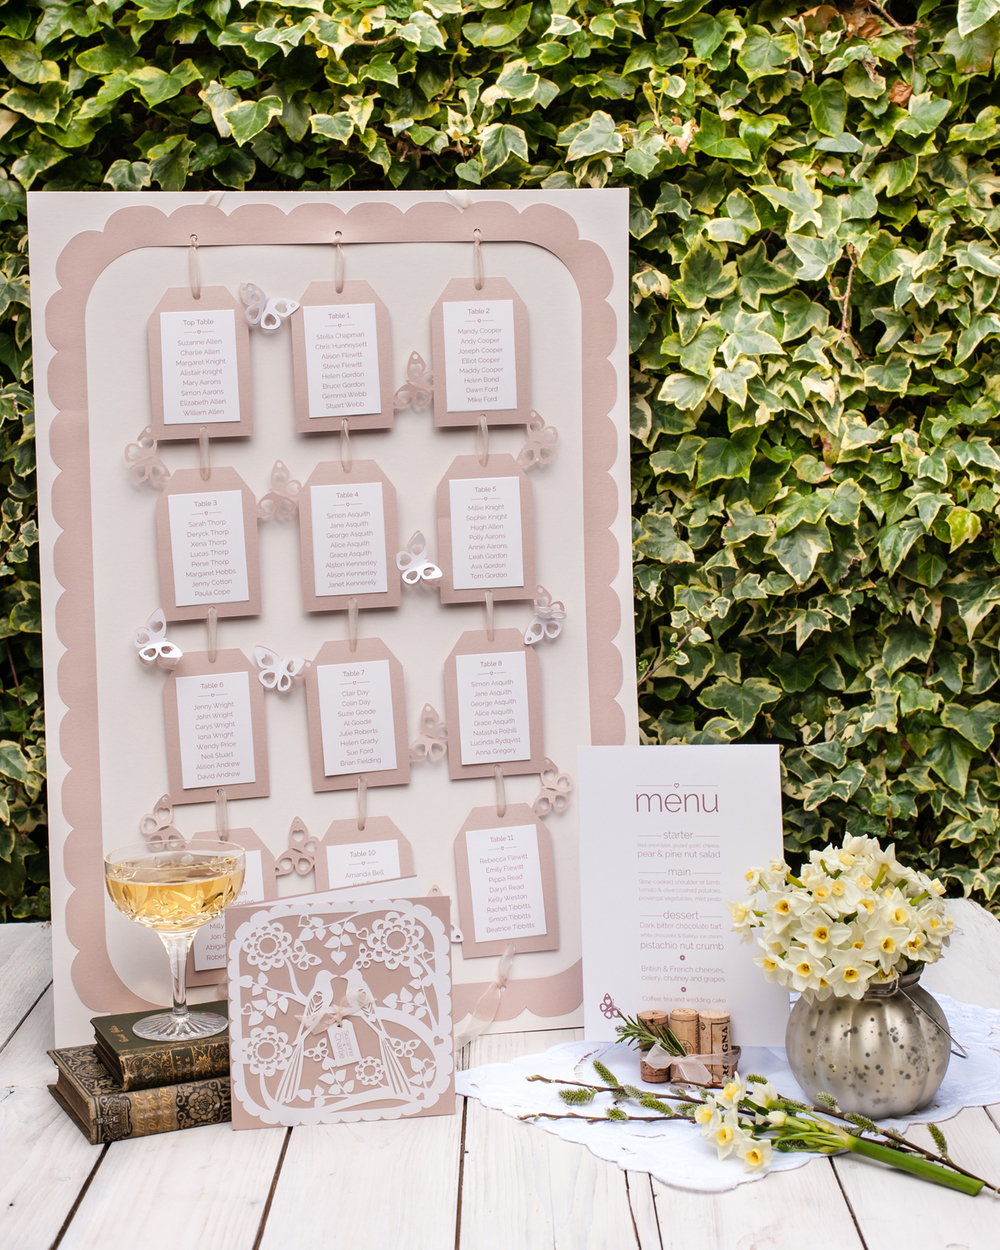 Suspended in a frame by organza ribbon and decorated with fluttering butterflies. This table plan measures 46cm x 64cm